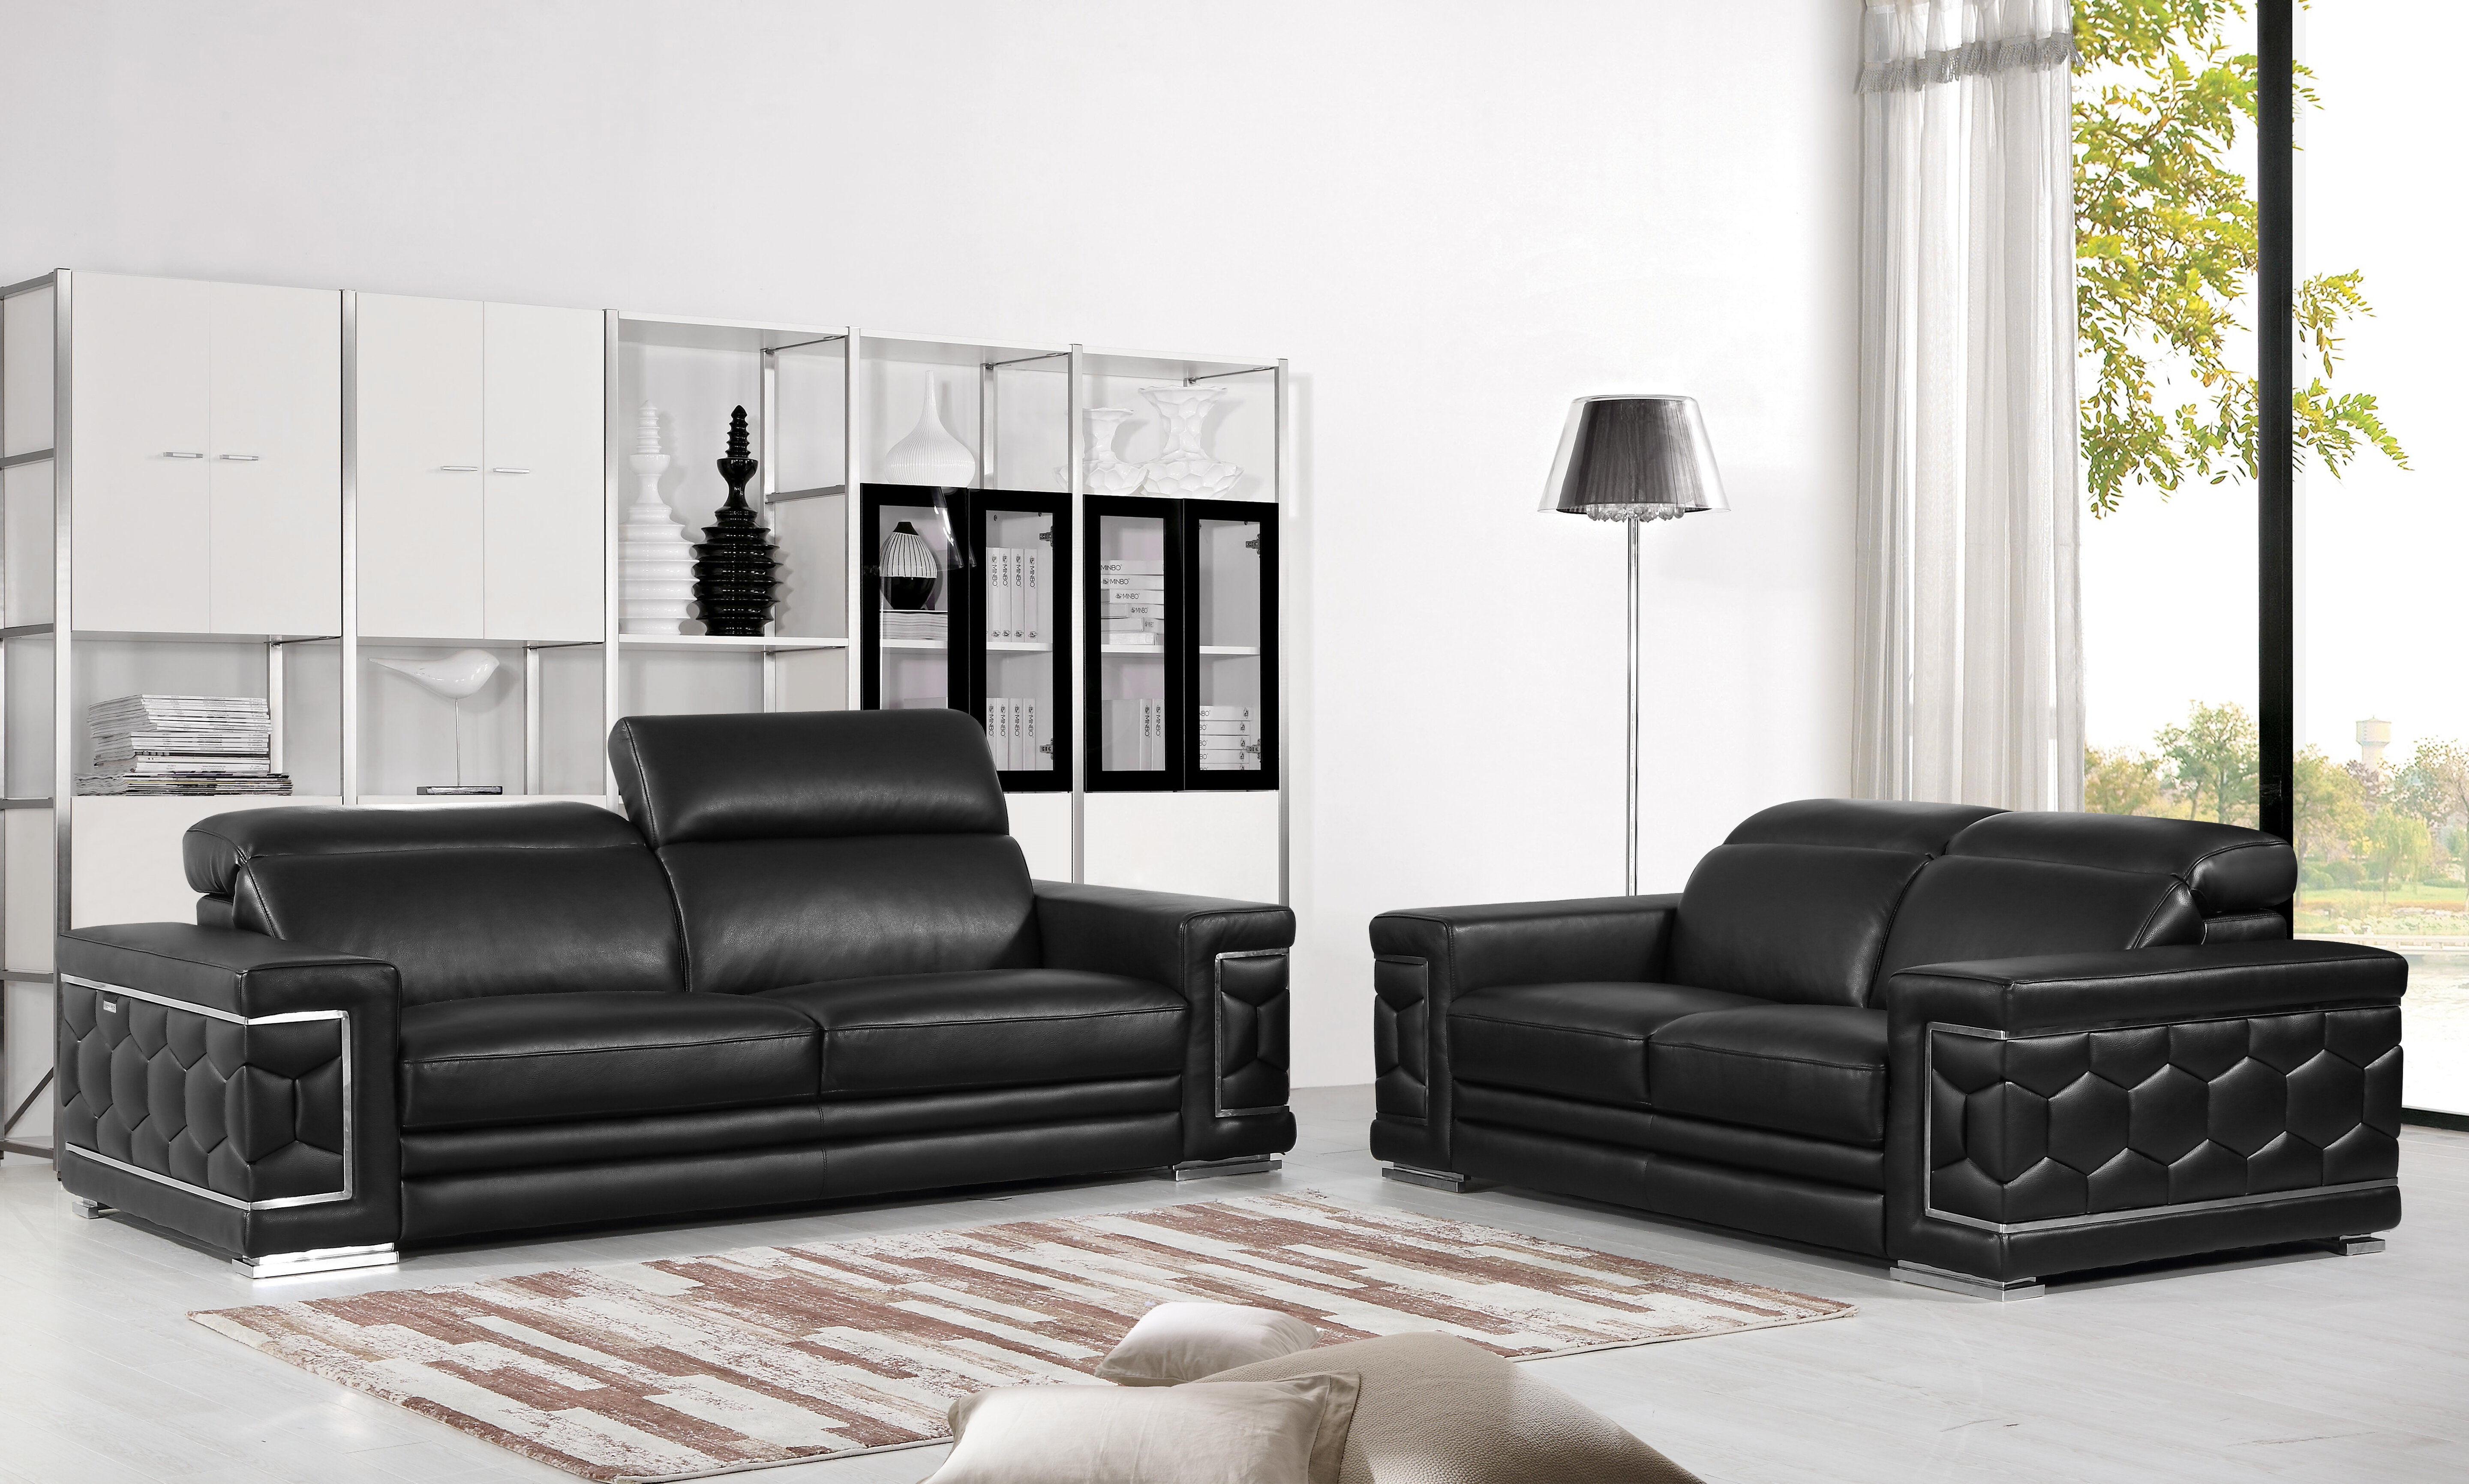 Orren ellis nicolette luxury italian leather 2 piece living room set wayfair